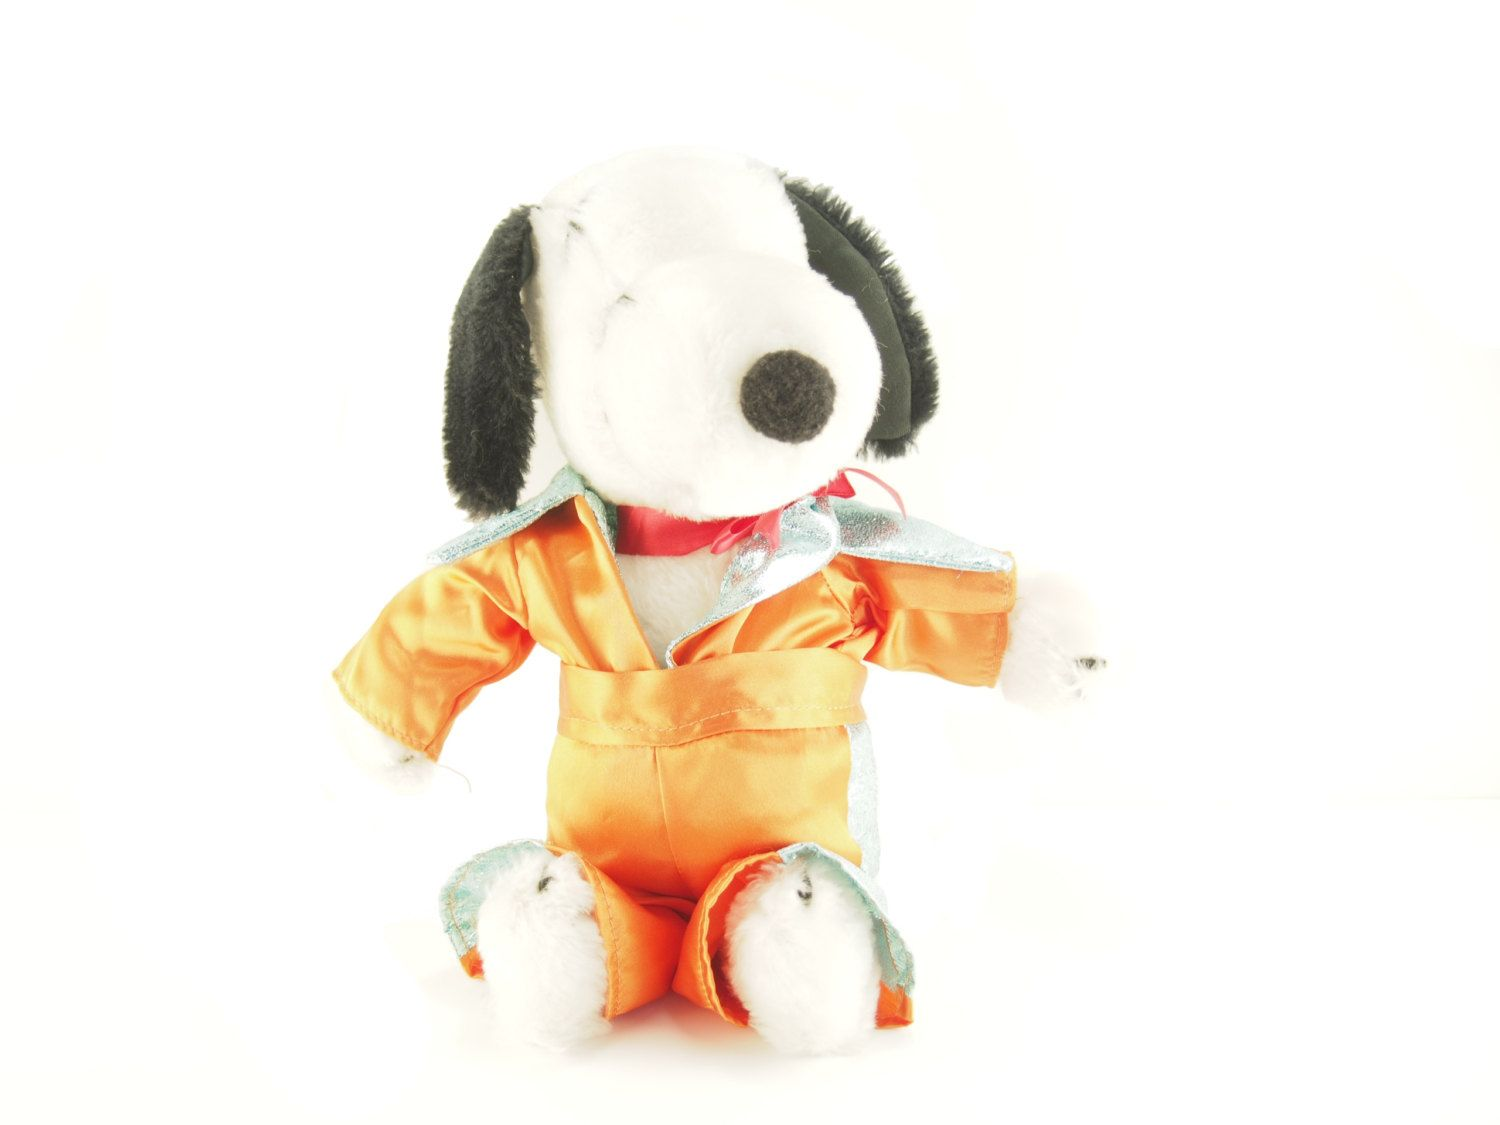 "RARE Vintage 11"" Snoopy Plush with Orange Elvis Costume, Soft stuffed animal dog doll toy Charlie Brown Peanuts collectible Christmas Gift by BelleBloomVintage on Etsy"